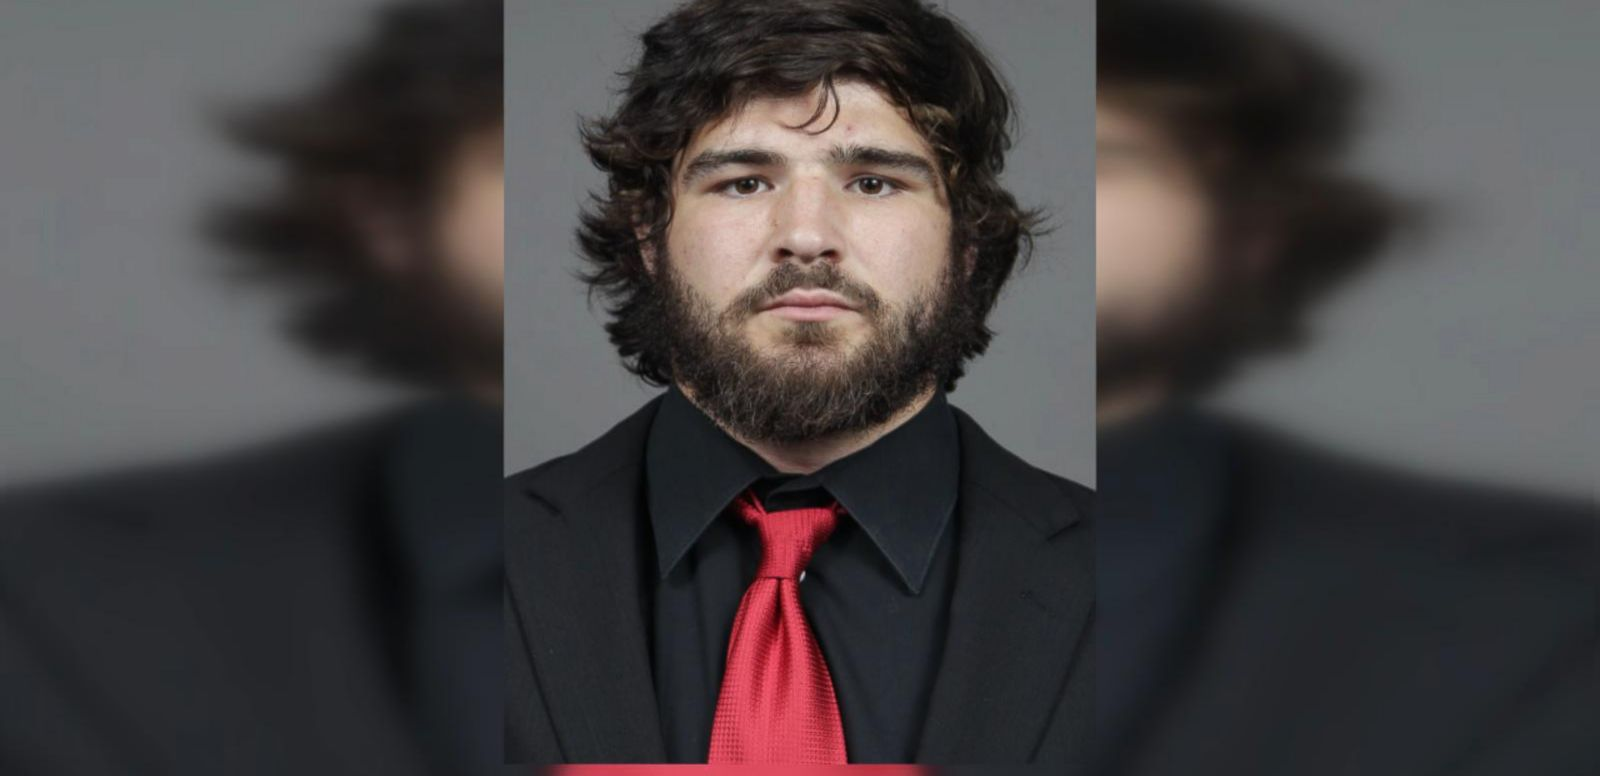 VIDEO: Search For Missing OSU Athlete Ends in Tragedy